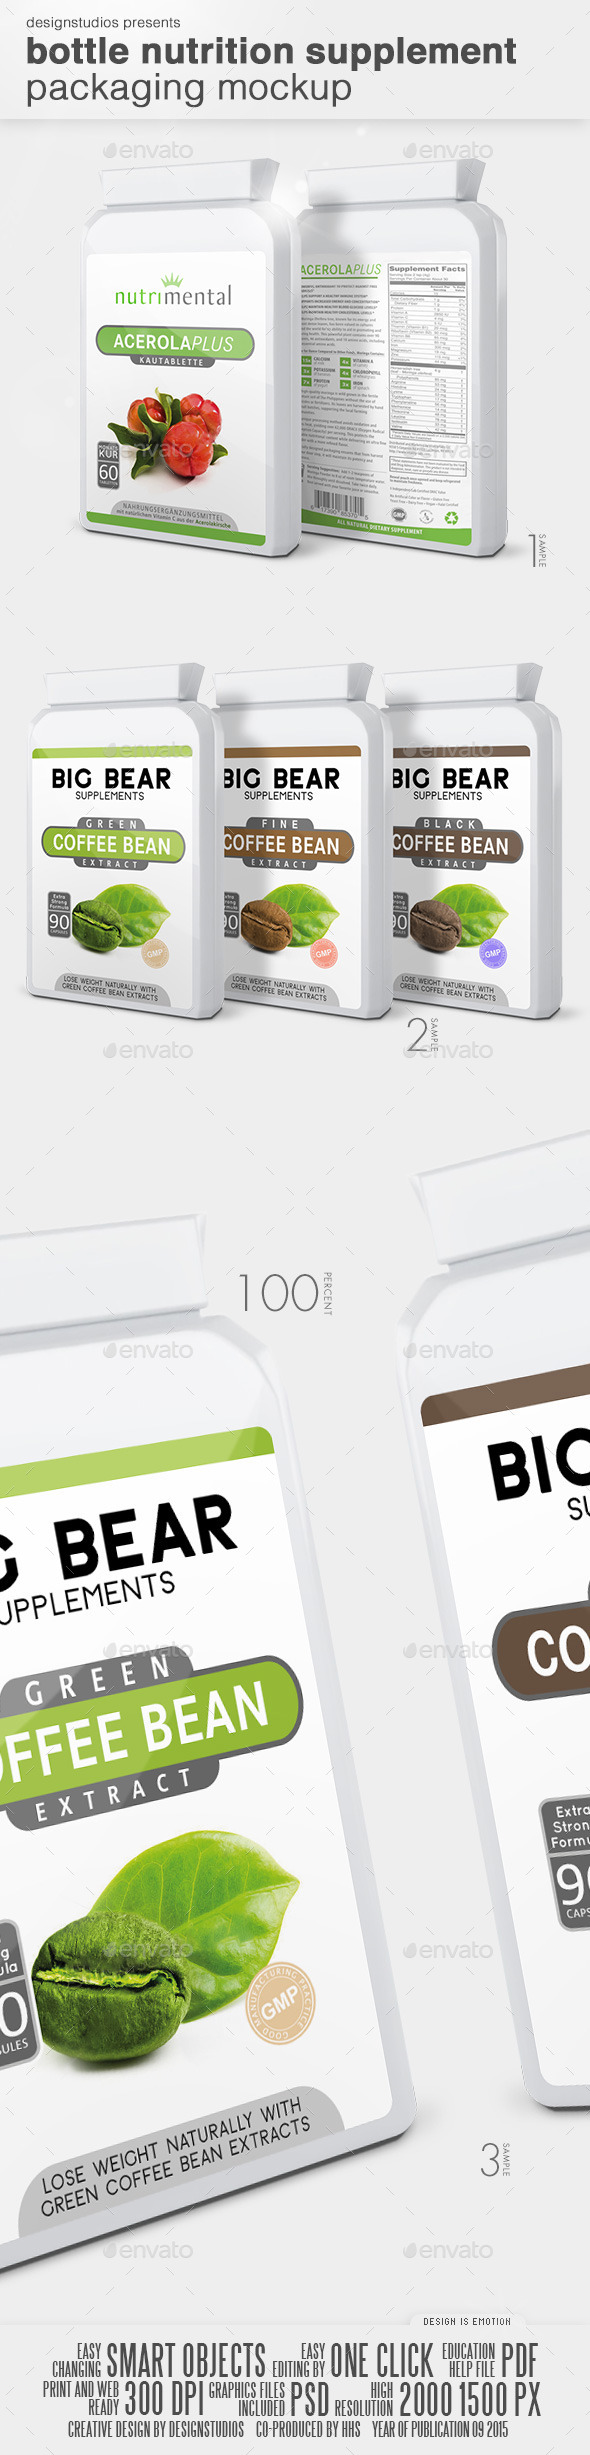 Bottle Nutrition Supplement Packaging Mock-Up - Miscellaneous Print